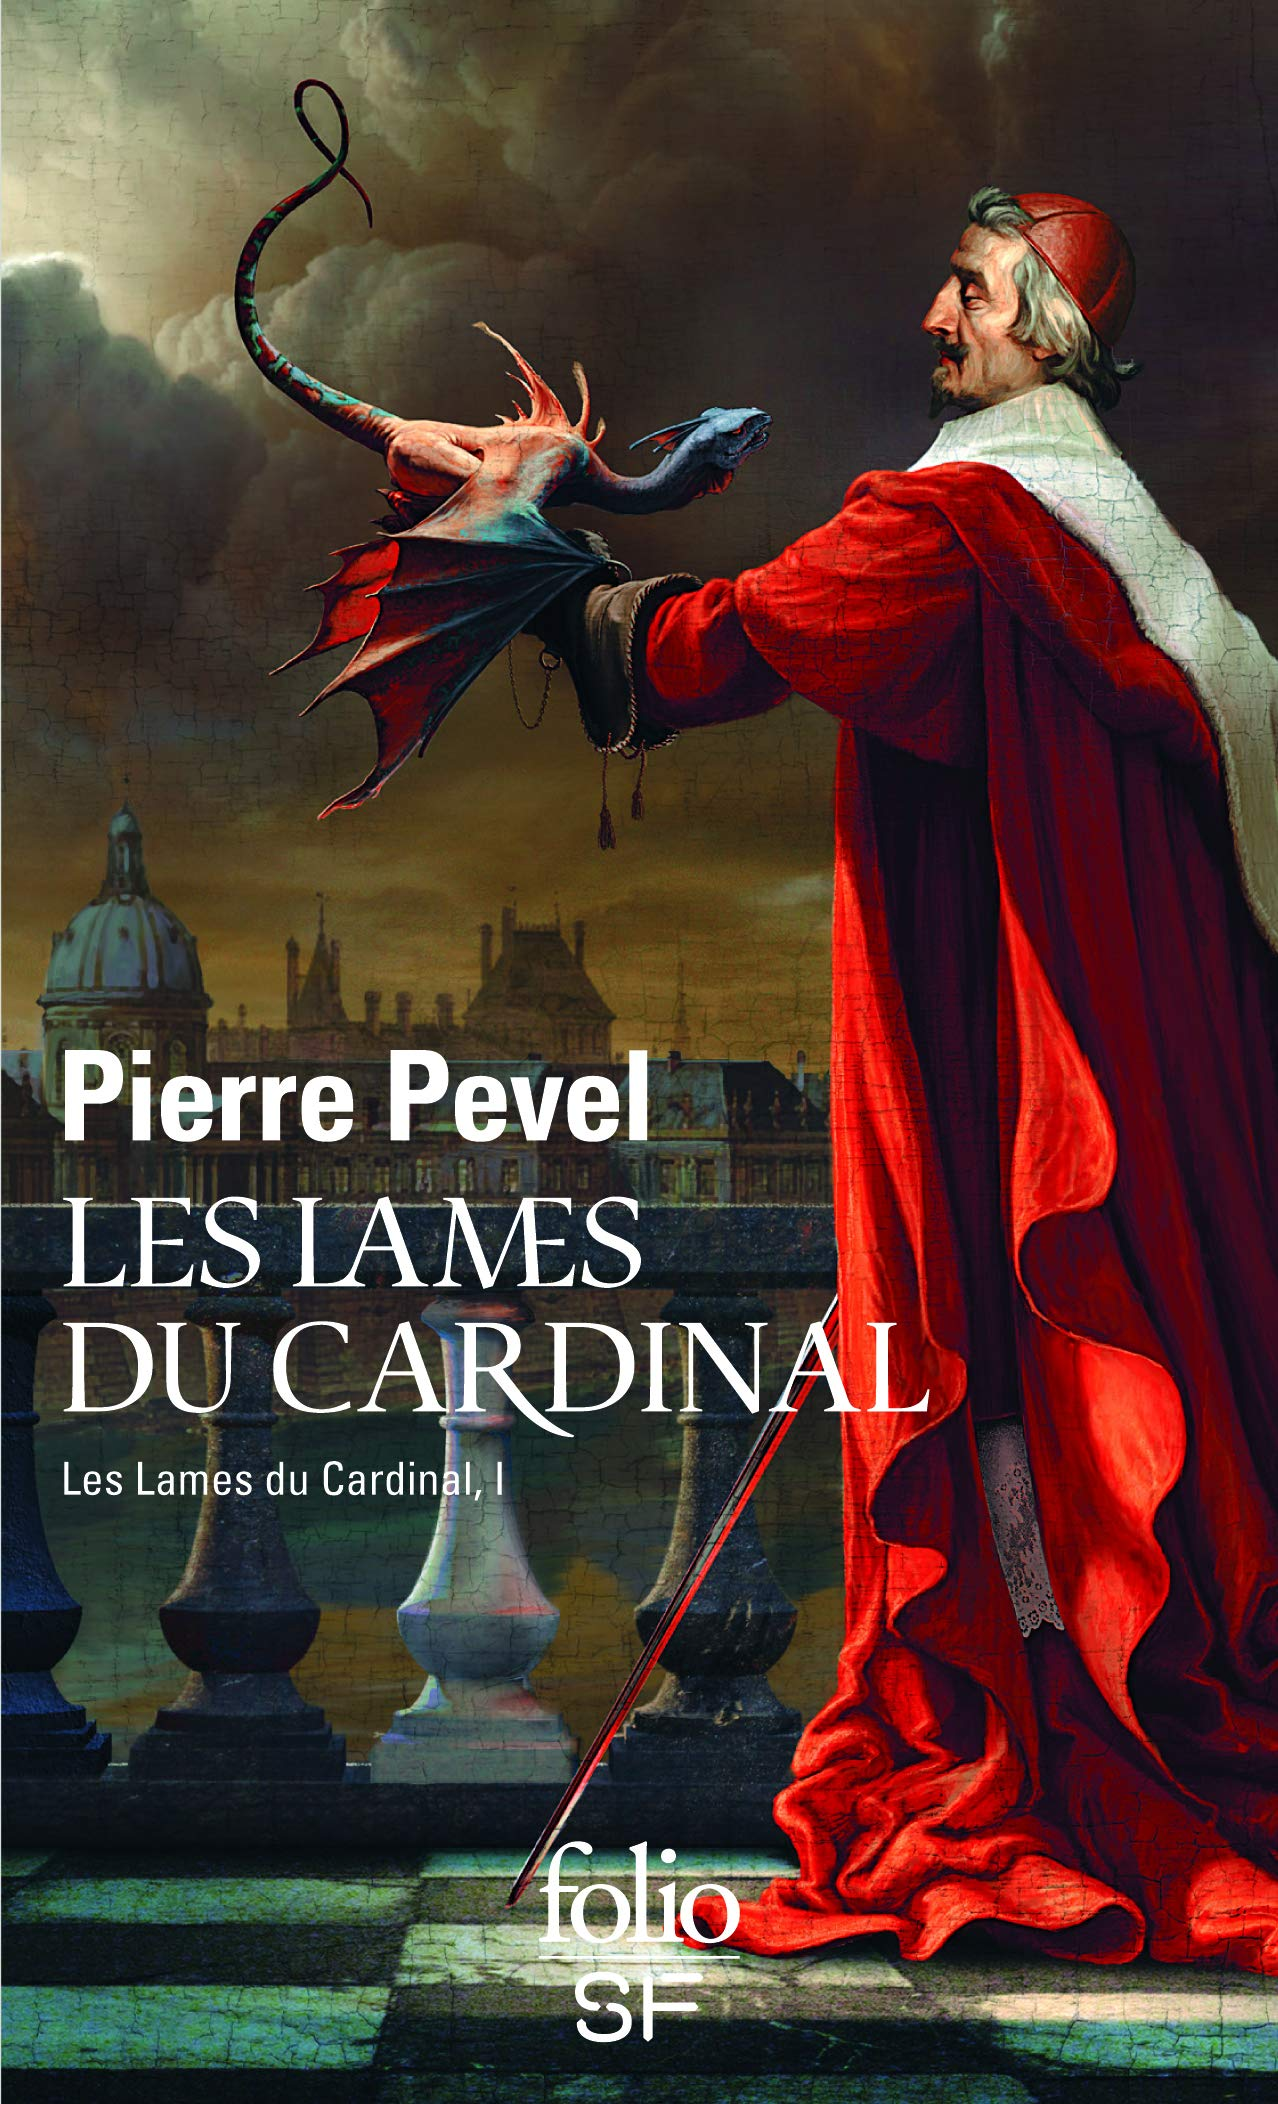 by Pierre Pevel Les Lames Du Cardinal French Edition 2013-02-01